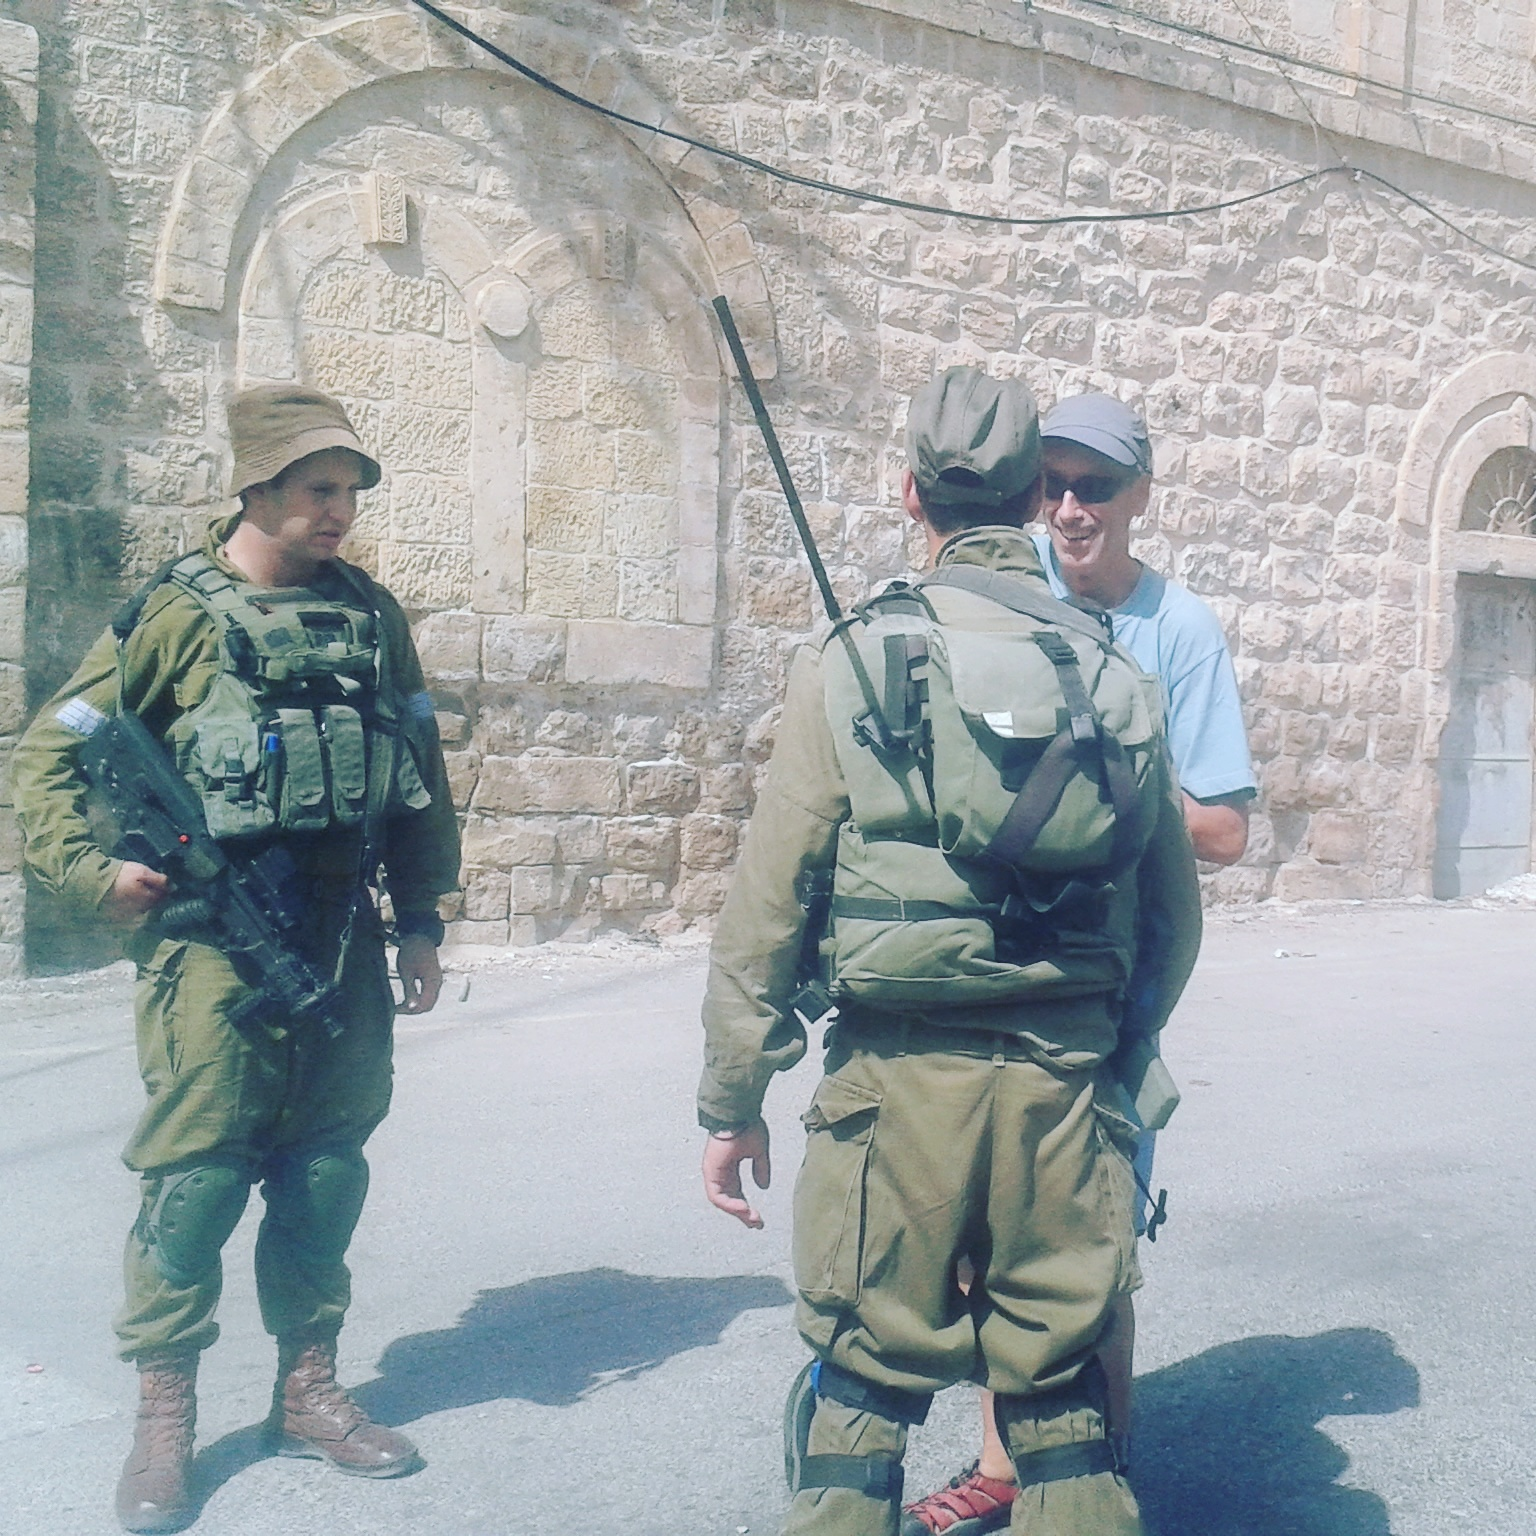 Hebron Collision – Inside The Arab/Israeli Conflict